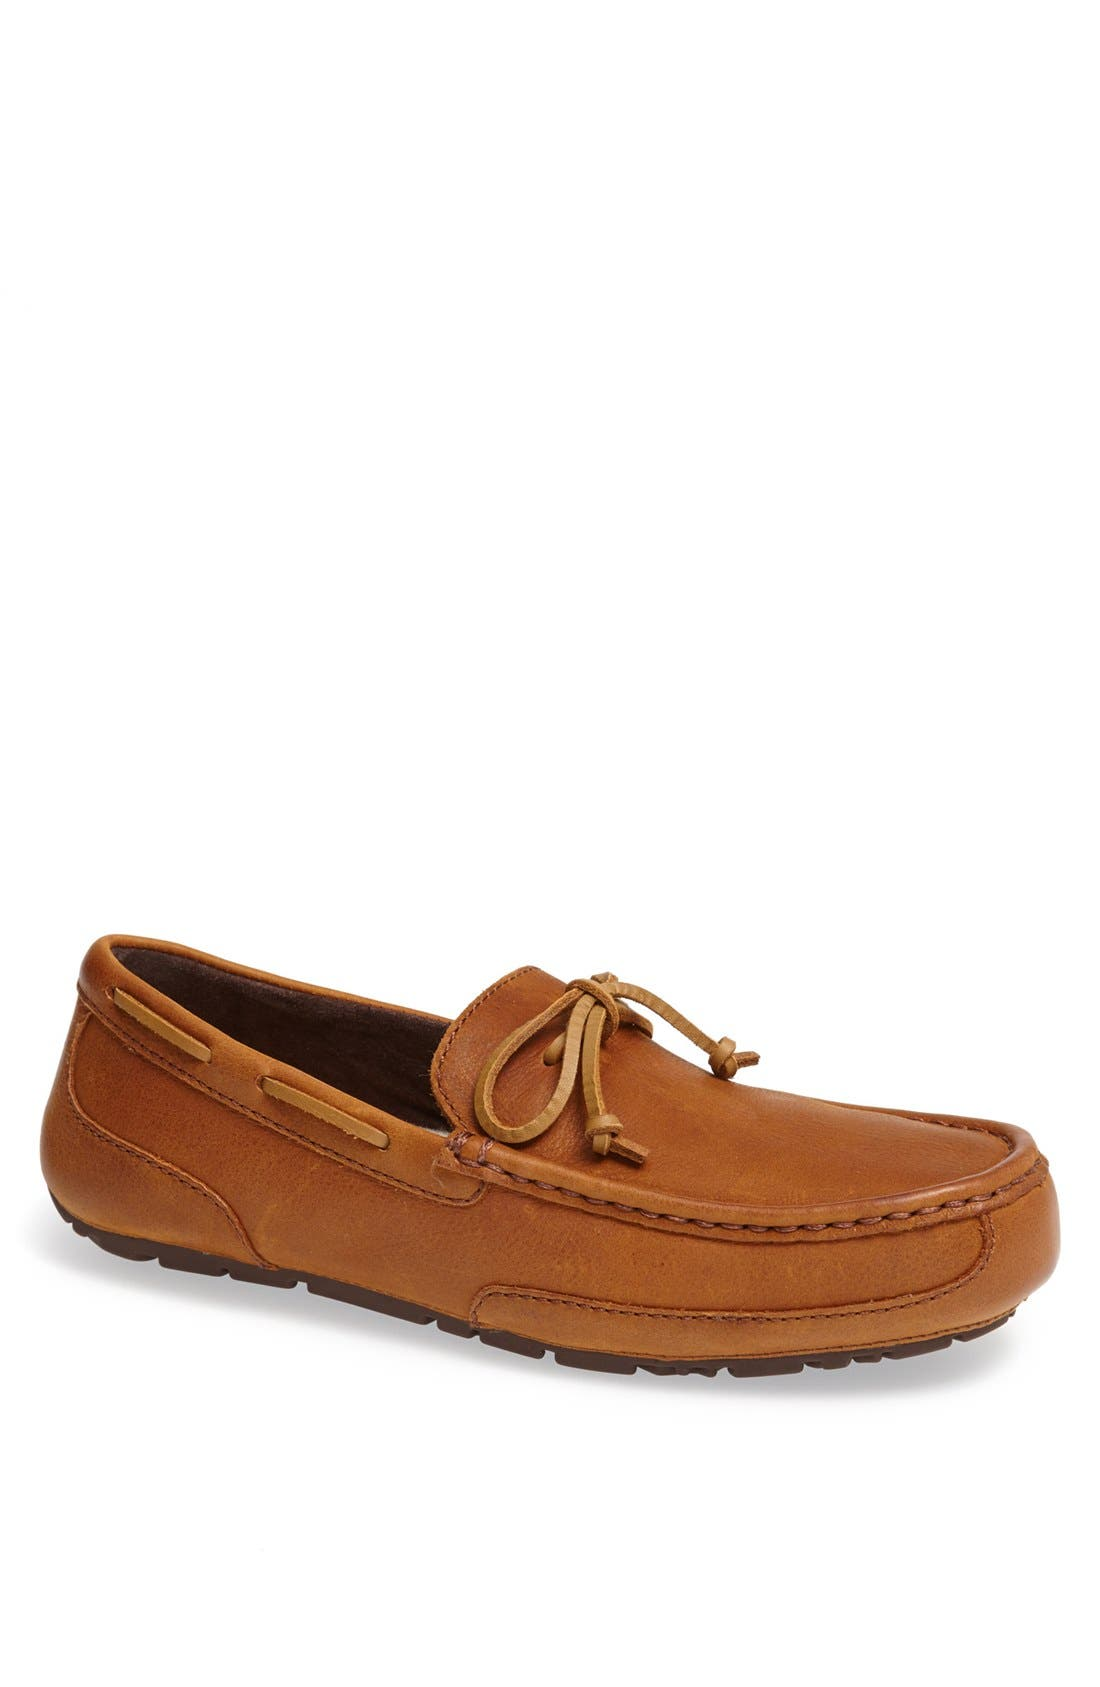 'Chester' Driving Loafer,                         Main,                         color, Chestnut